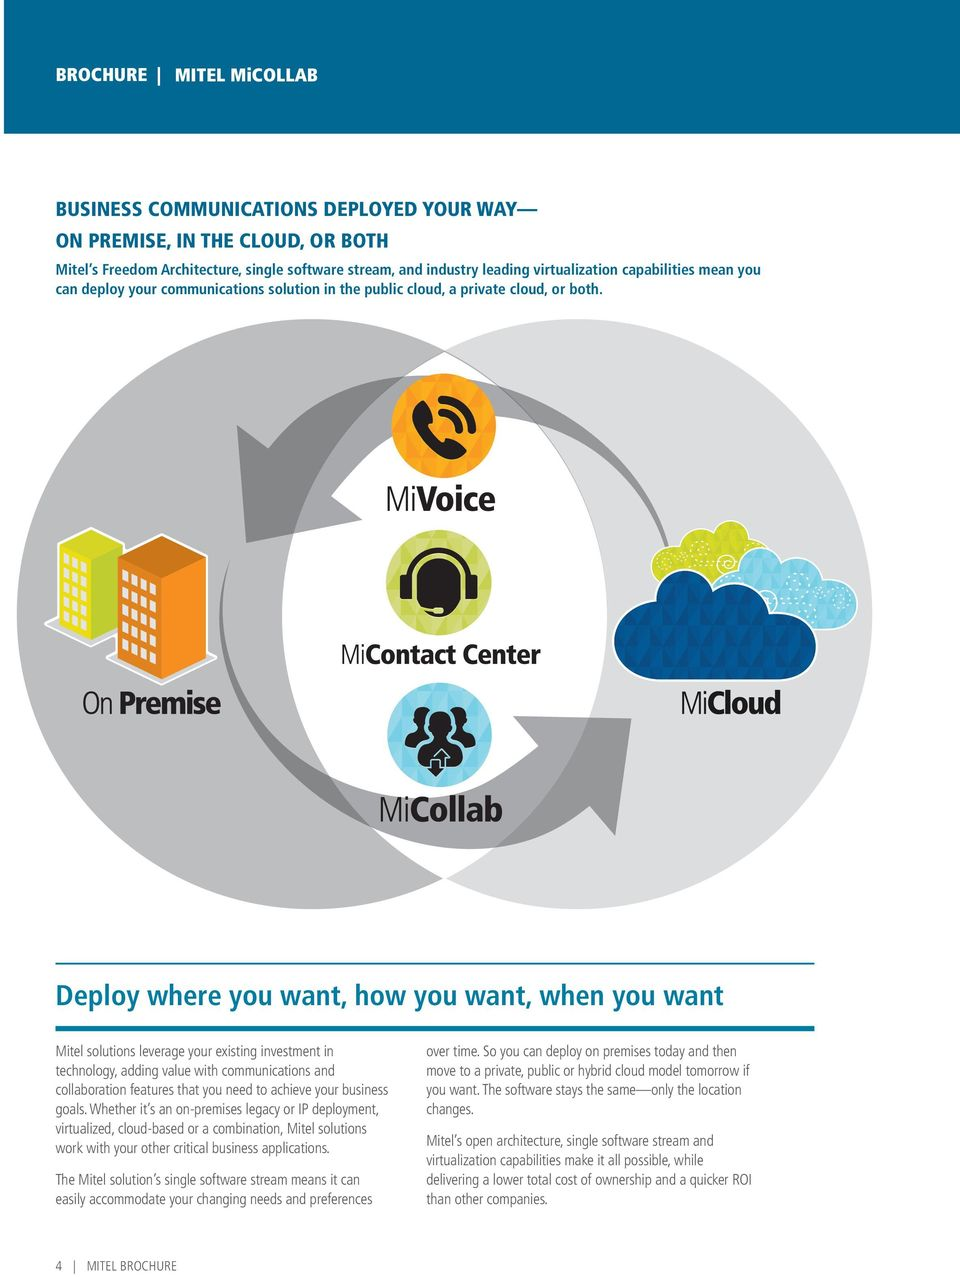 Deploy where you want, how you want, when you want Mitel solutions leverage your existing investment in technology, adding value with communications and collaboration features that you need to